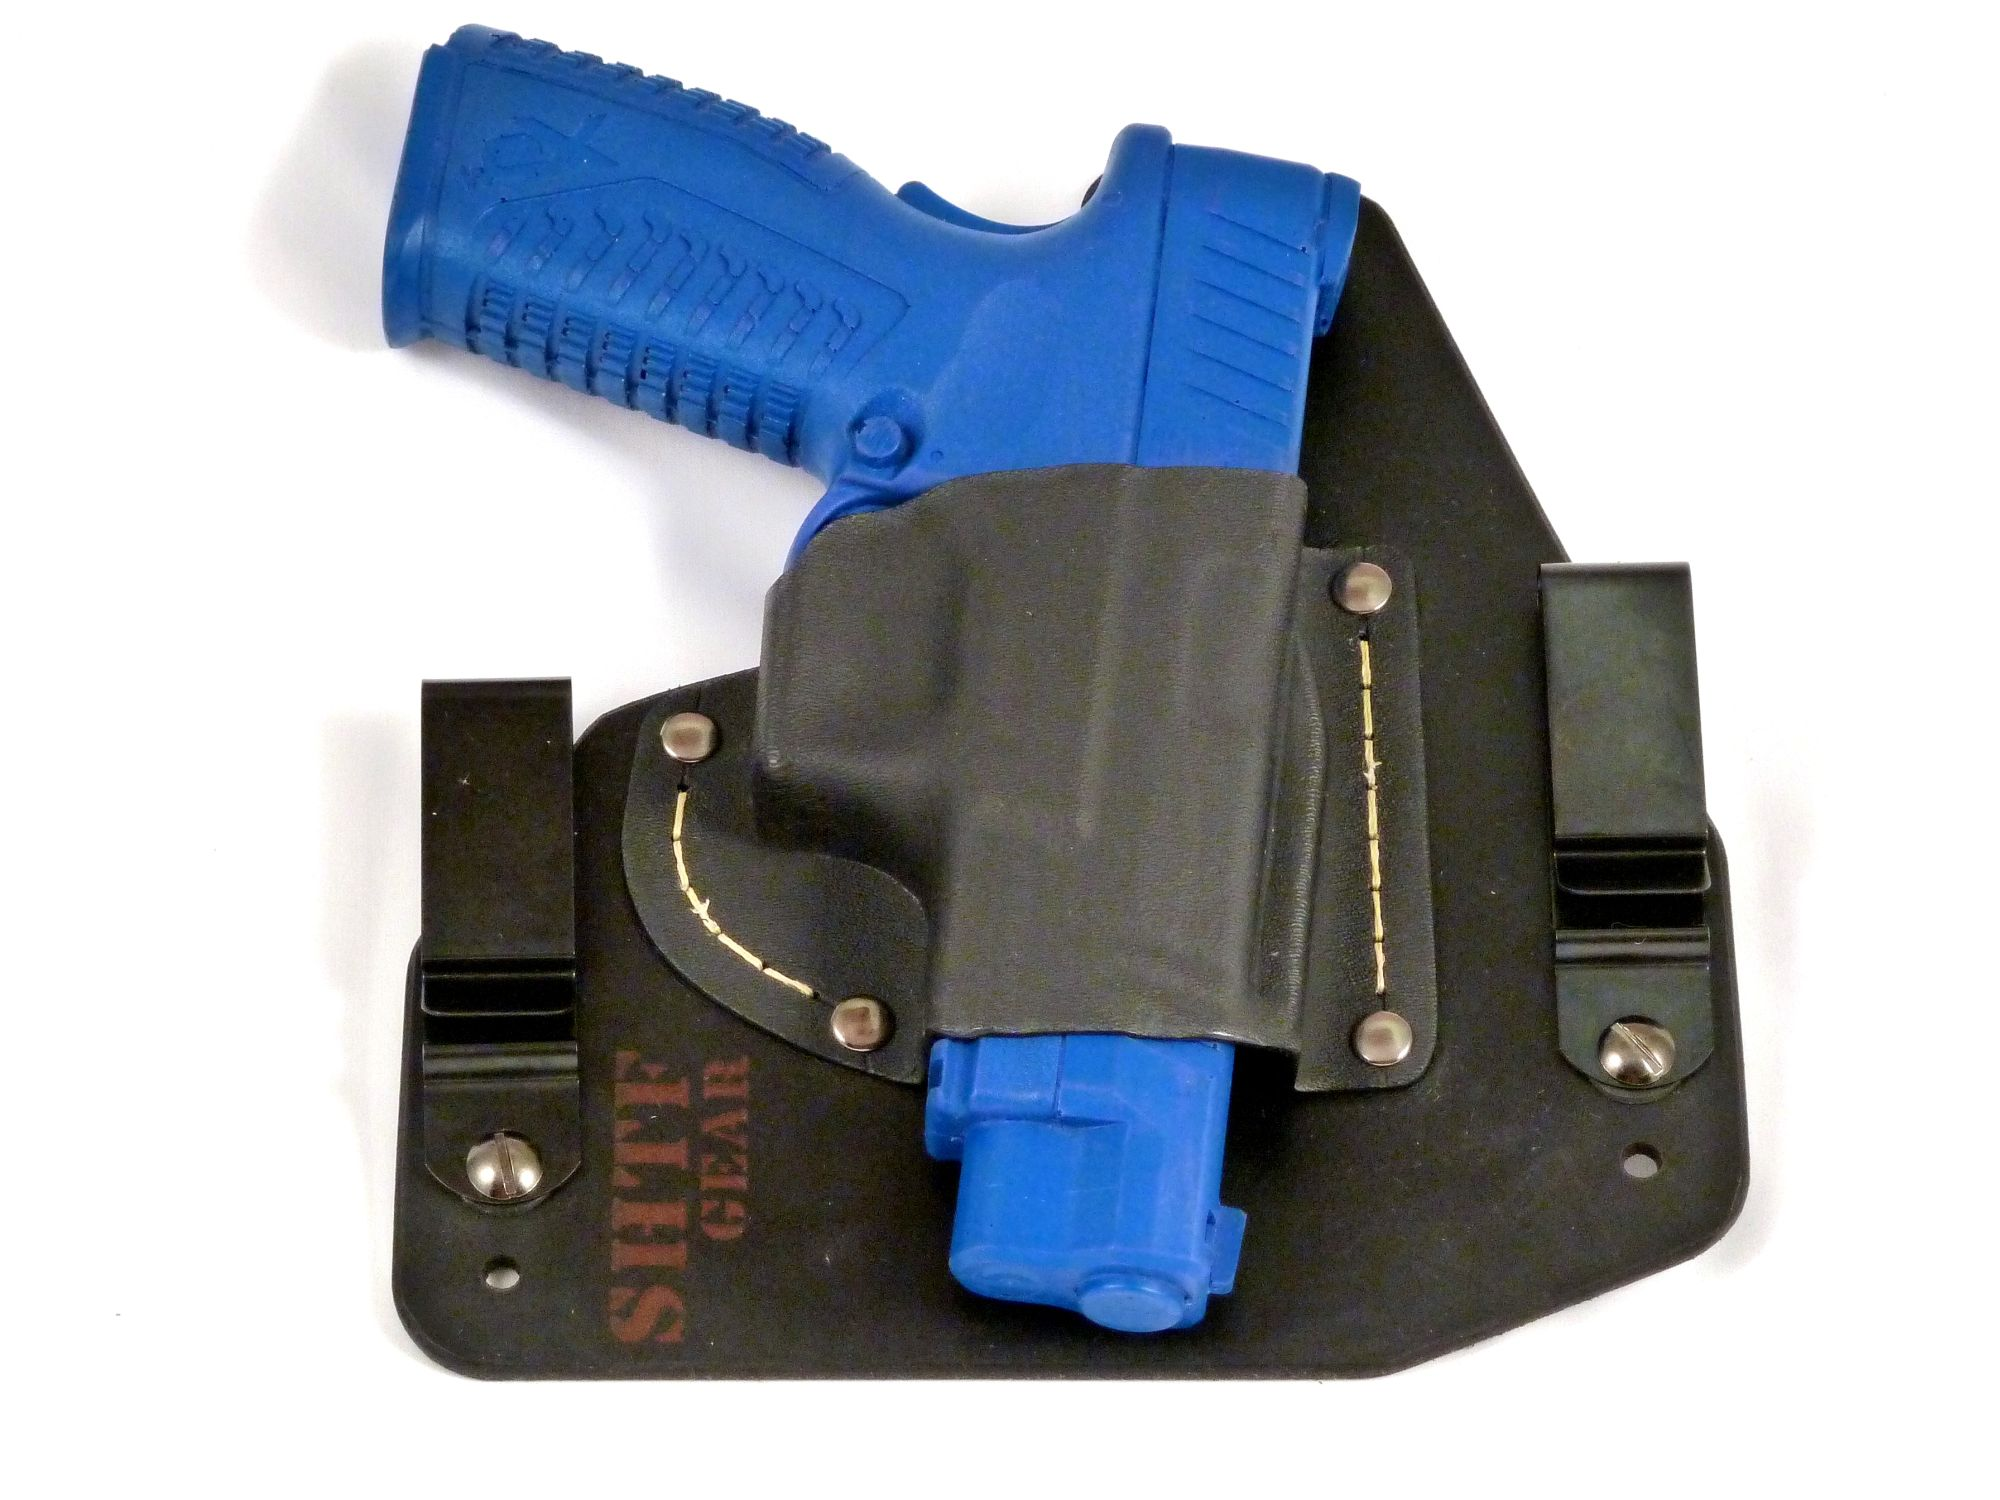 What's your favorite IWB CC holster?-xdm-gun-front-1500.jpg